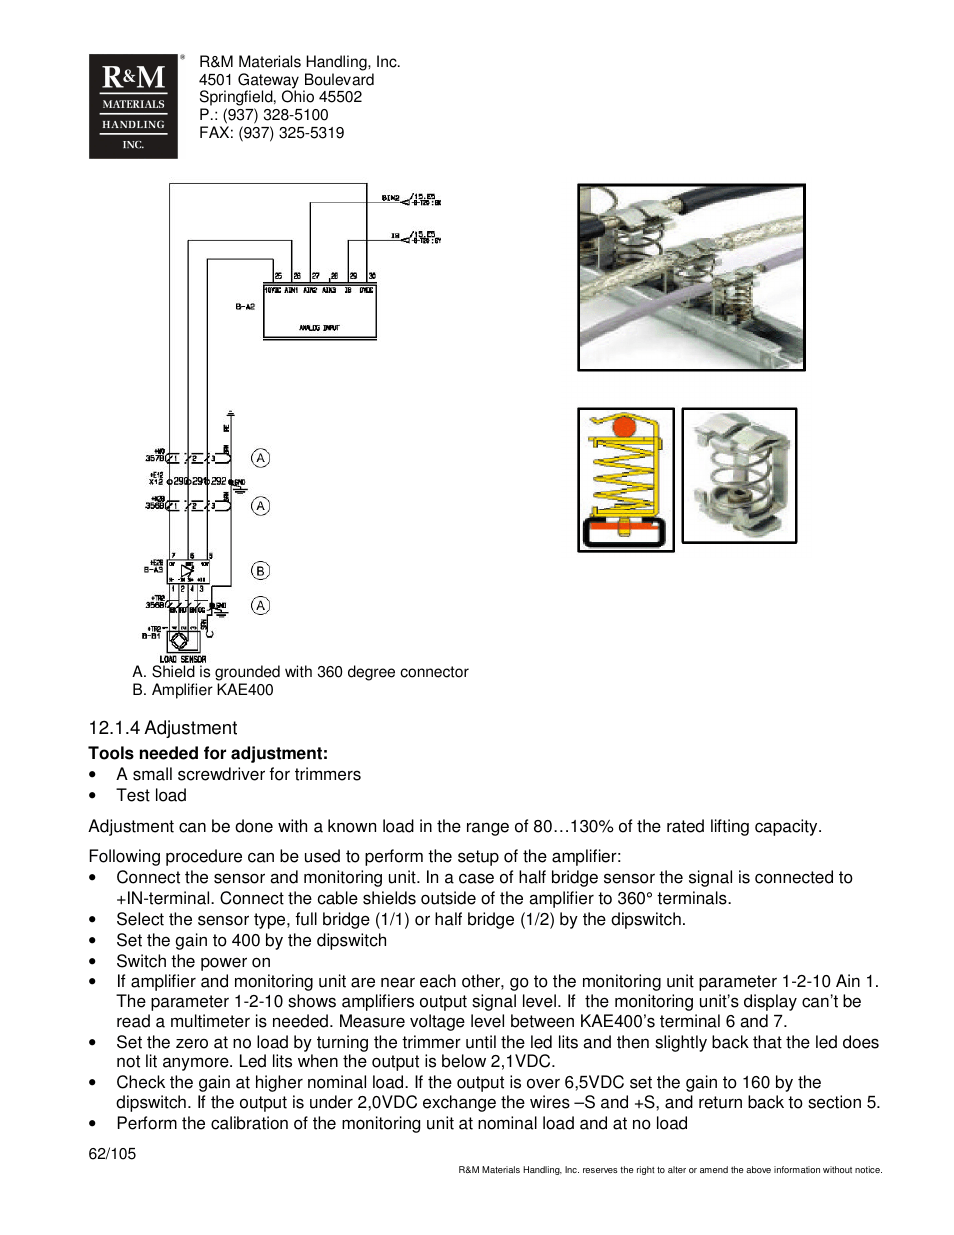 medium resolution of r m materials handling hoist monitors user manual page 62 105 r amp m hoist wiring diagram